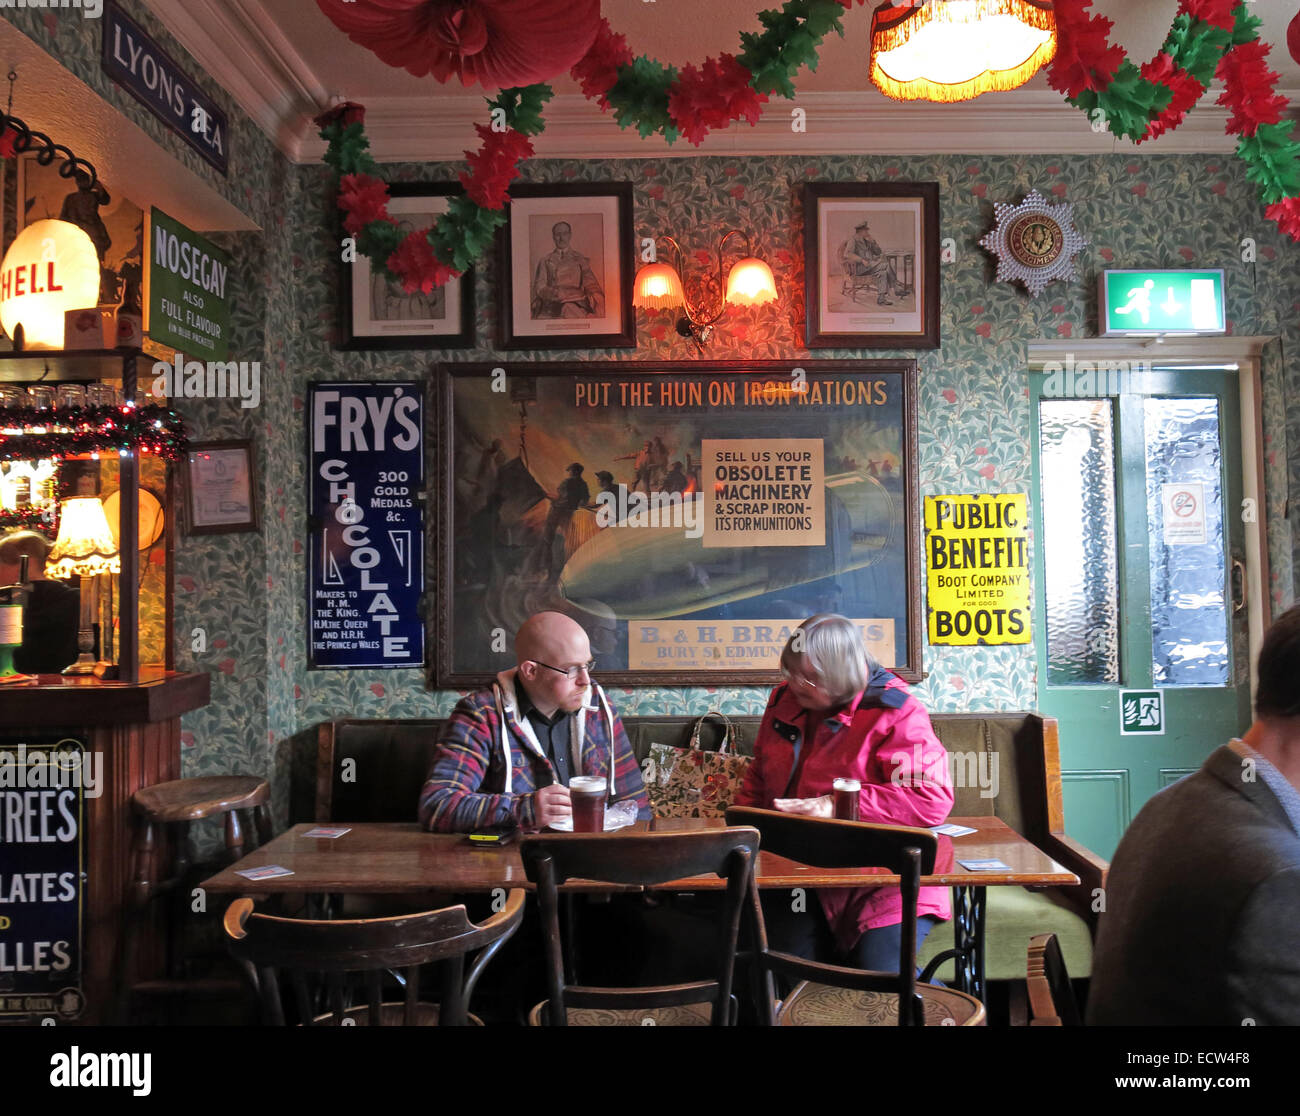 The Albion Inn, classic English Pub in Chester, England,UK with 2 drinkers - Stock Image